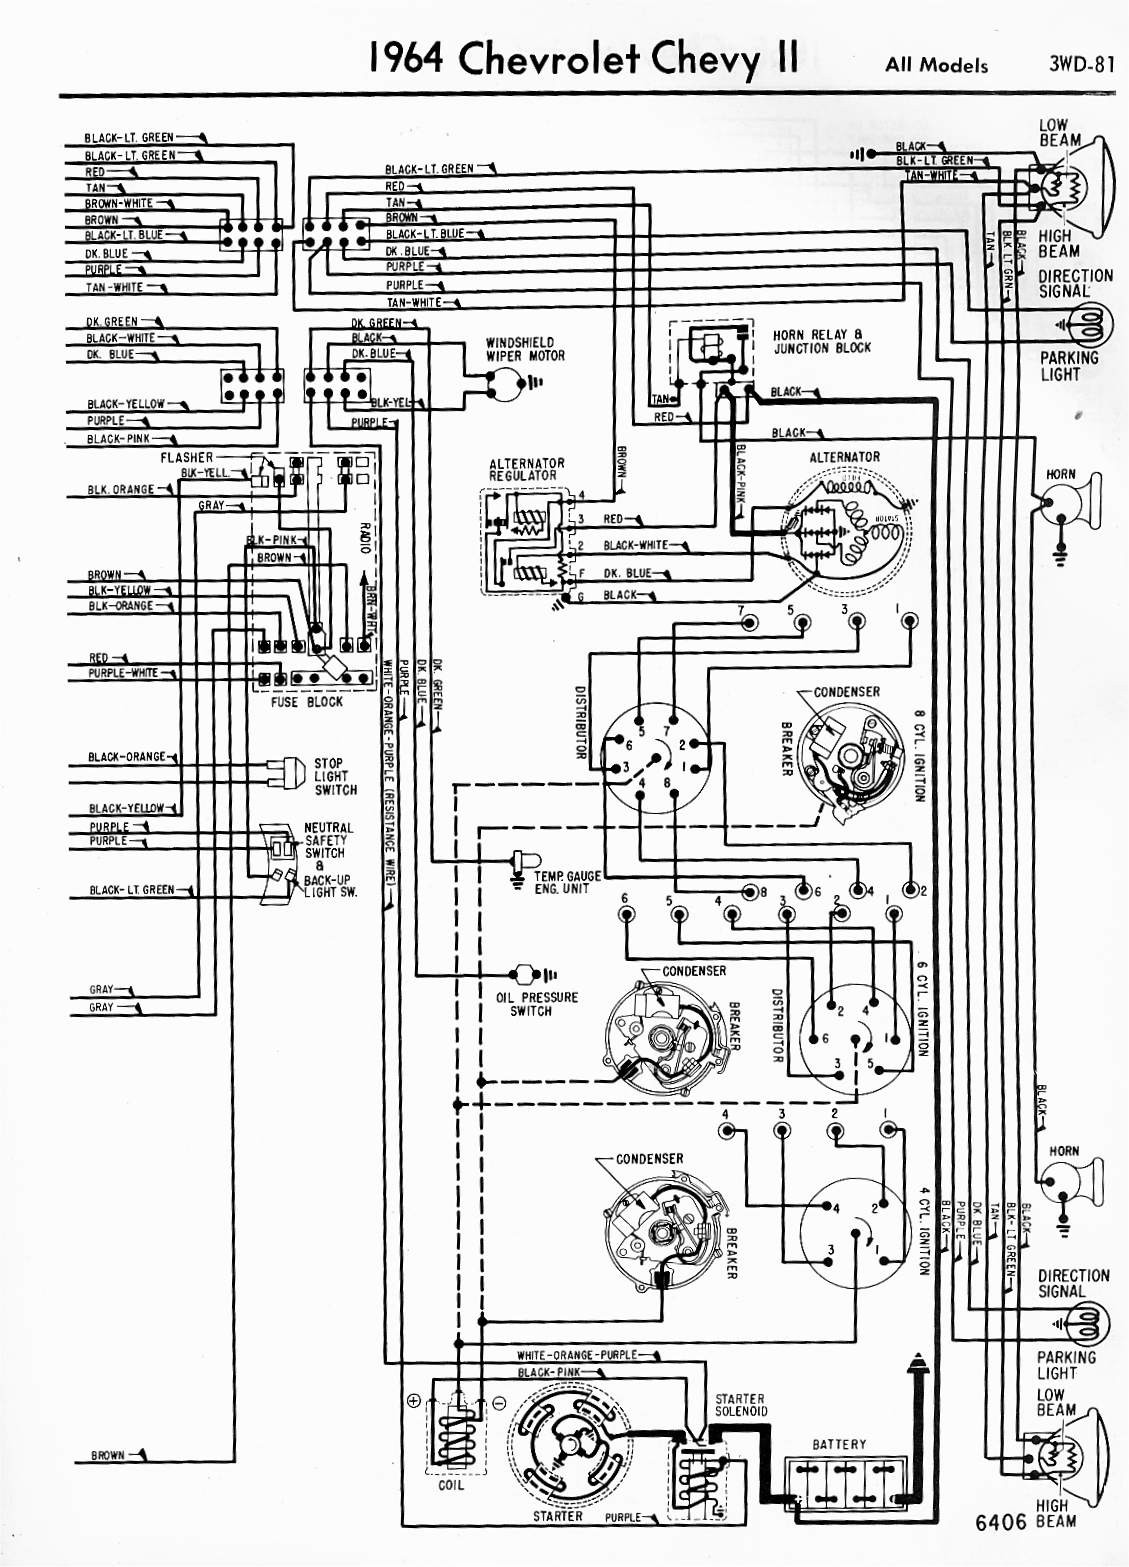 chevy c10 wiring diagram furthermore 1963 chevy nova wiring diagram rh 107 191 48 154 1967 Nova Wiring Diagram PDF 1963 Nova Wiring Diagram